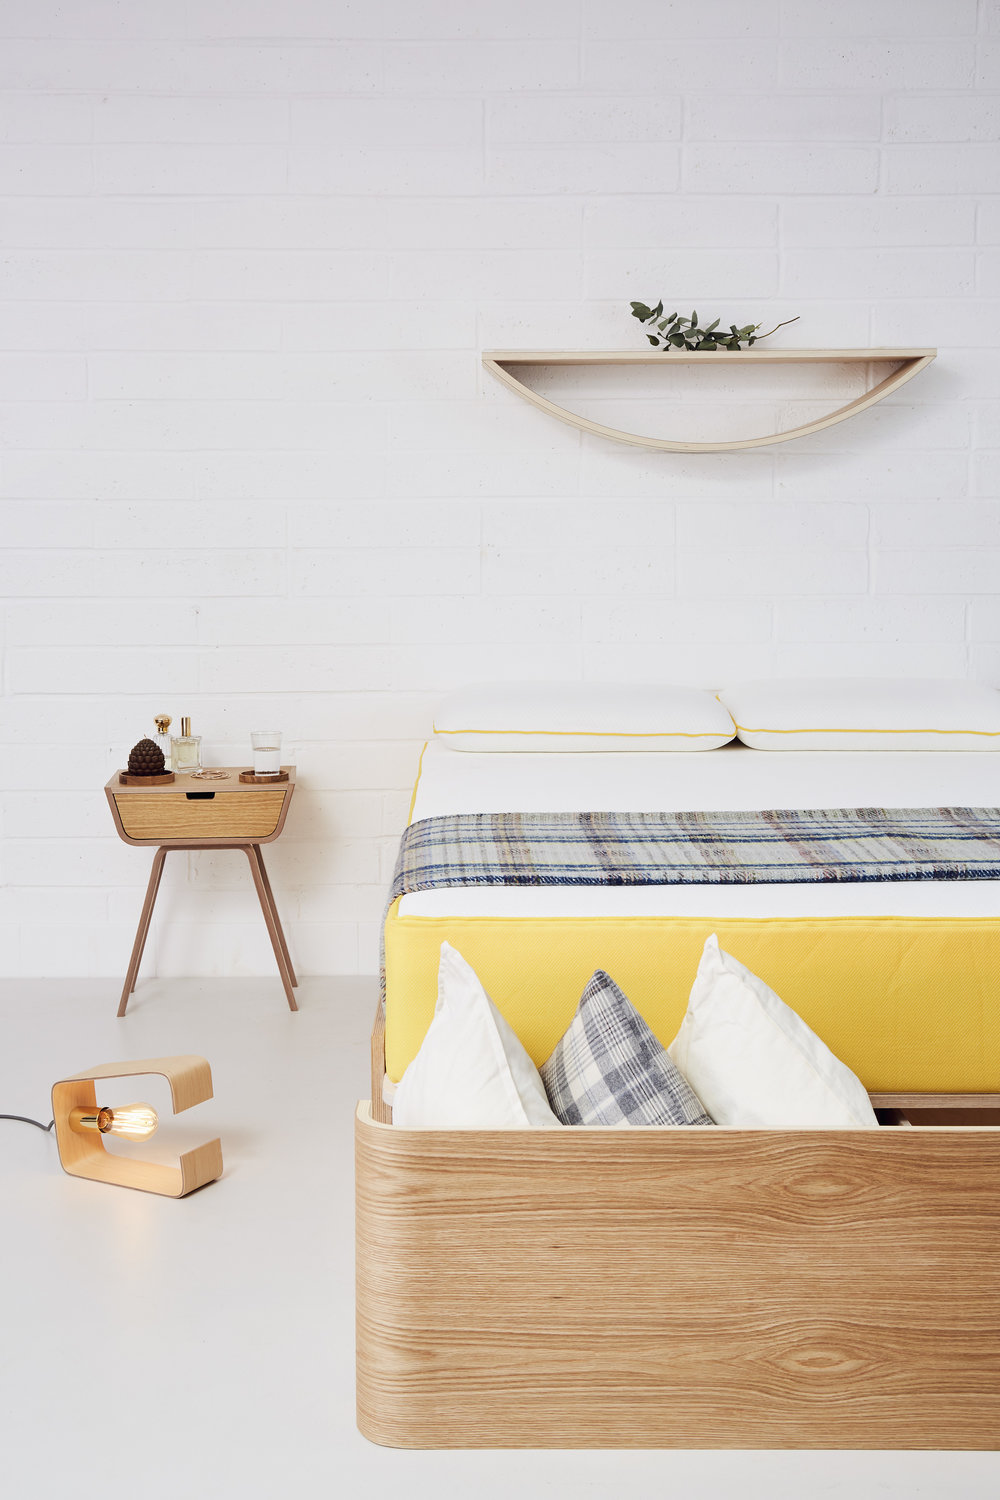 Smile shelf and bedroom by Lozi